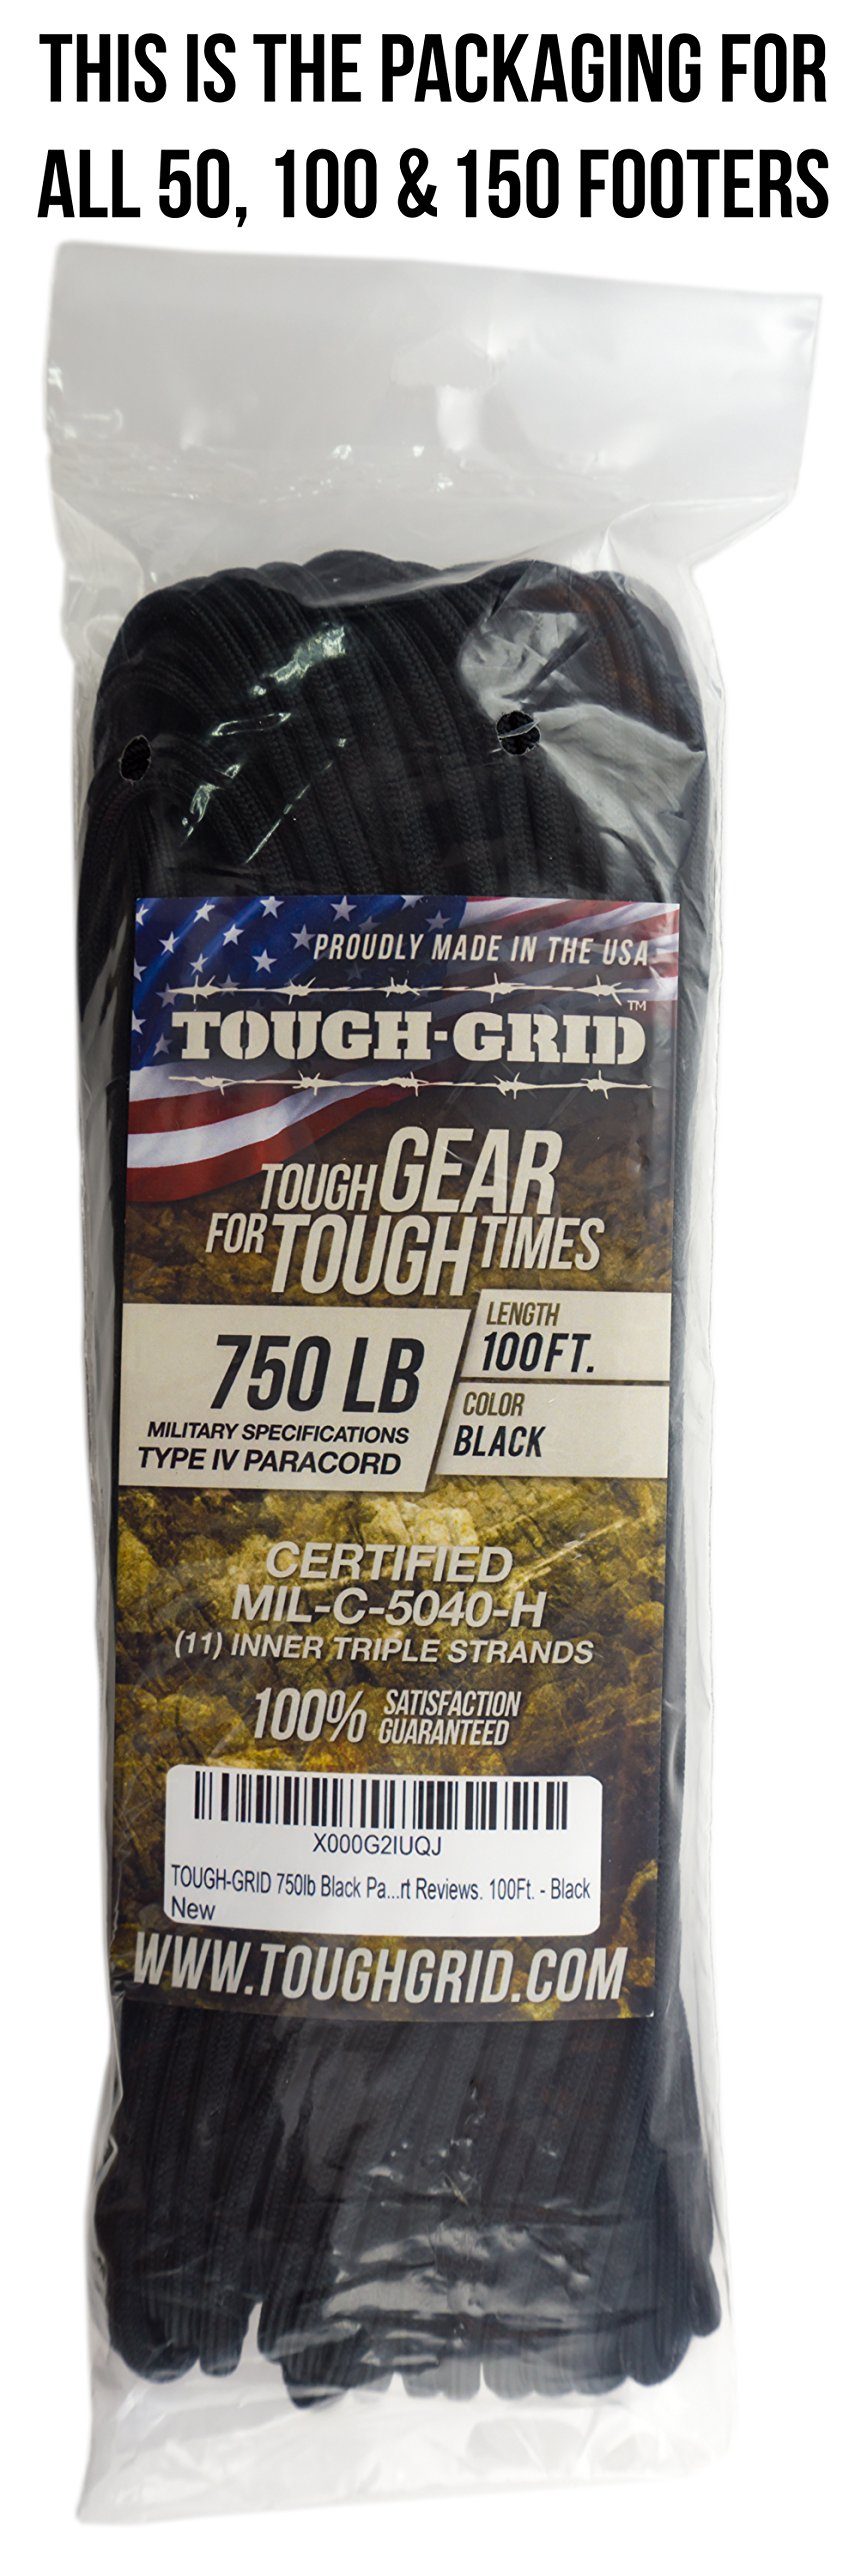 TOUGH-GRID 750lb Black Paracord/Parachute Cord - Genuine Mil Spec Type IV 750lb Paracord Used by The US Military (MIl-C-5040-H) - 100% Nylon - Made in The USA. 50Ft. - Black by TOUGH-GRID (Image #5)